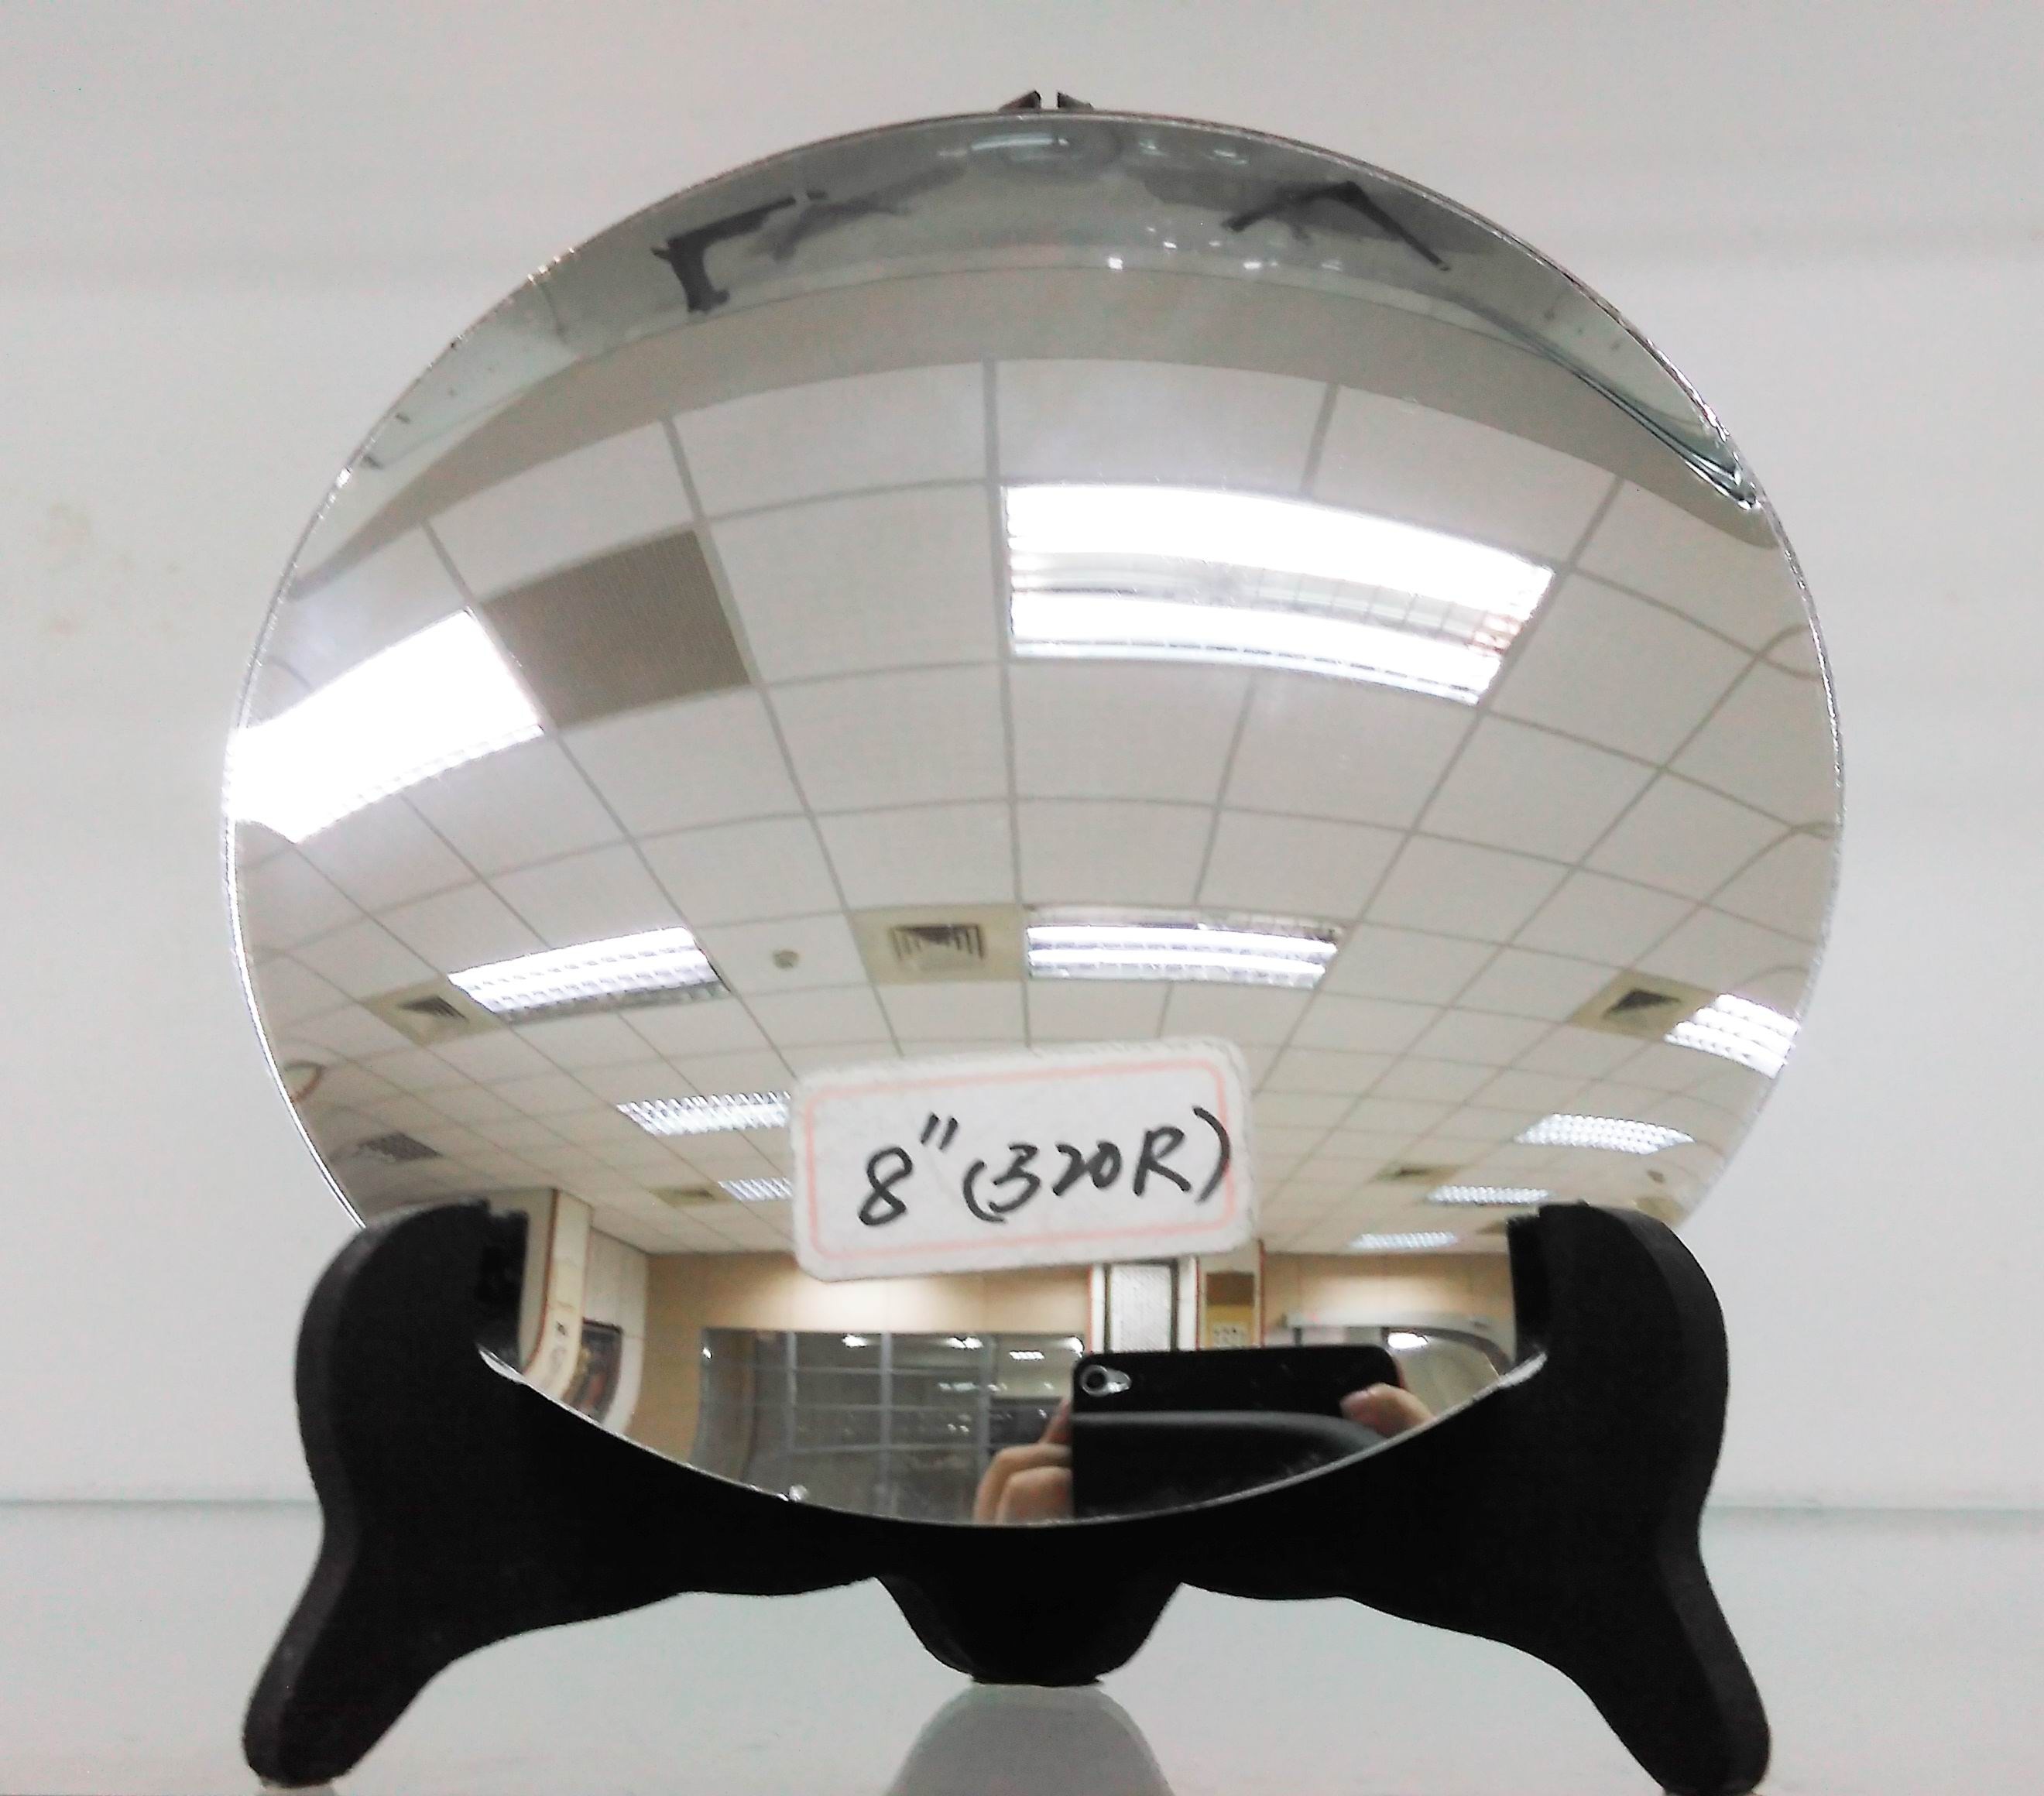 "8"" 320 CURVE WIDE ANGLE MIRROR"